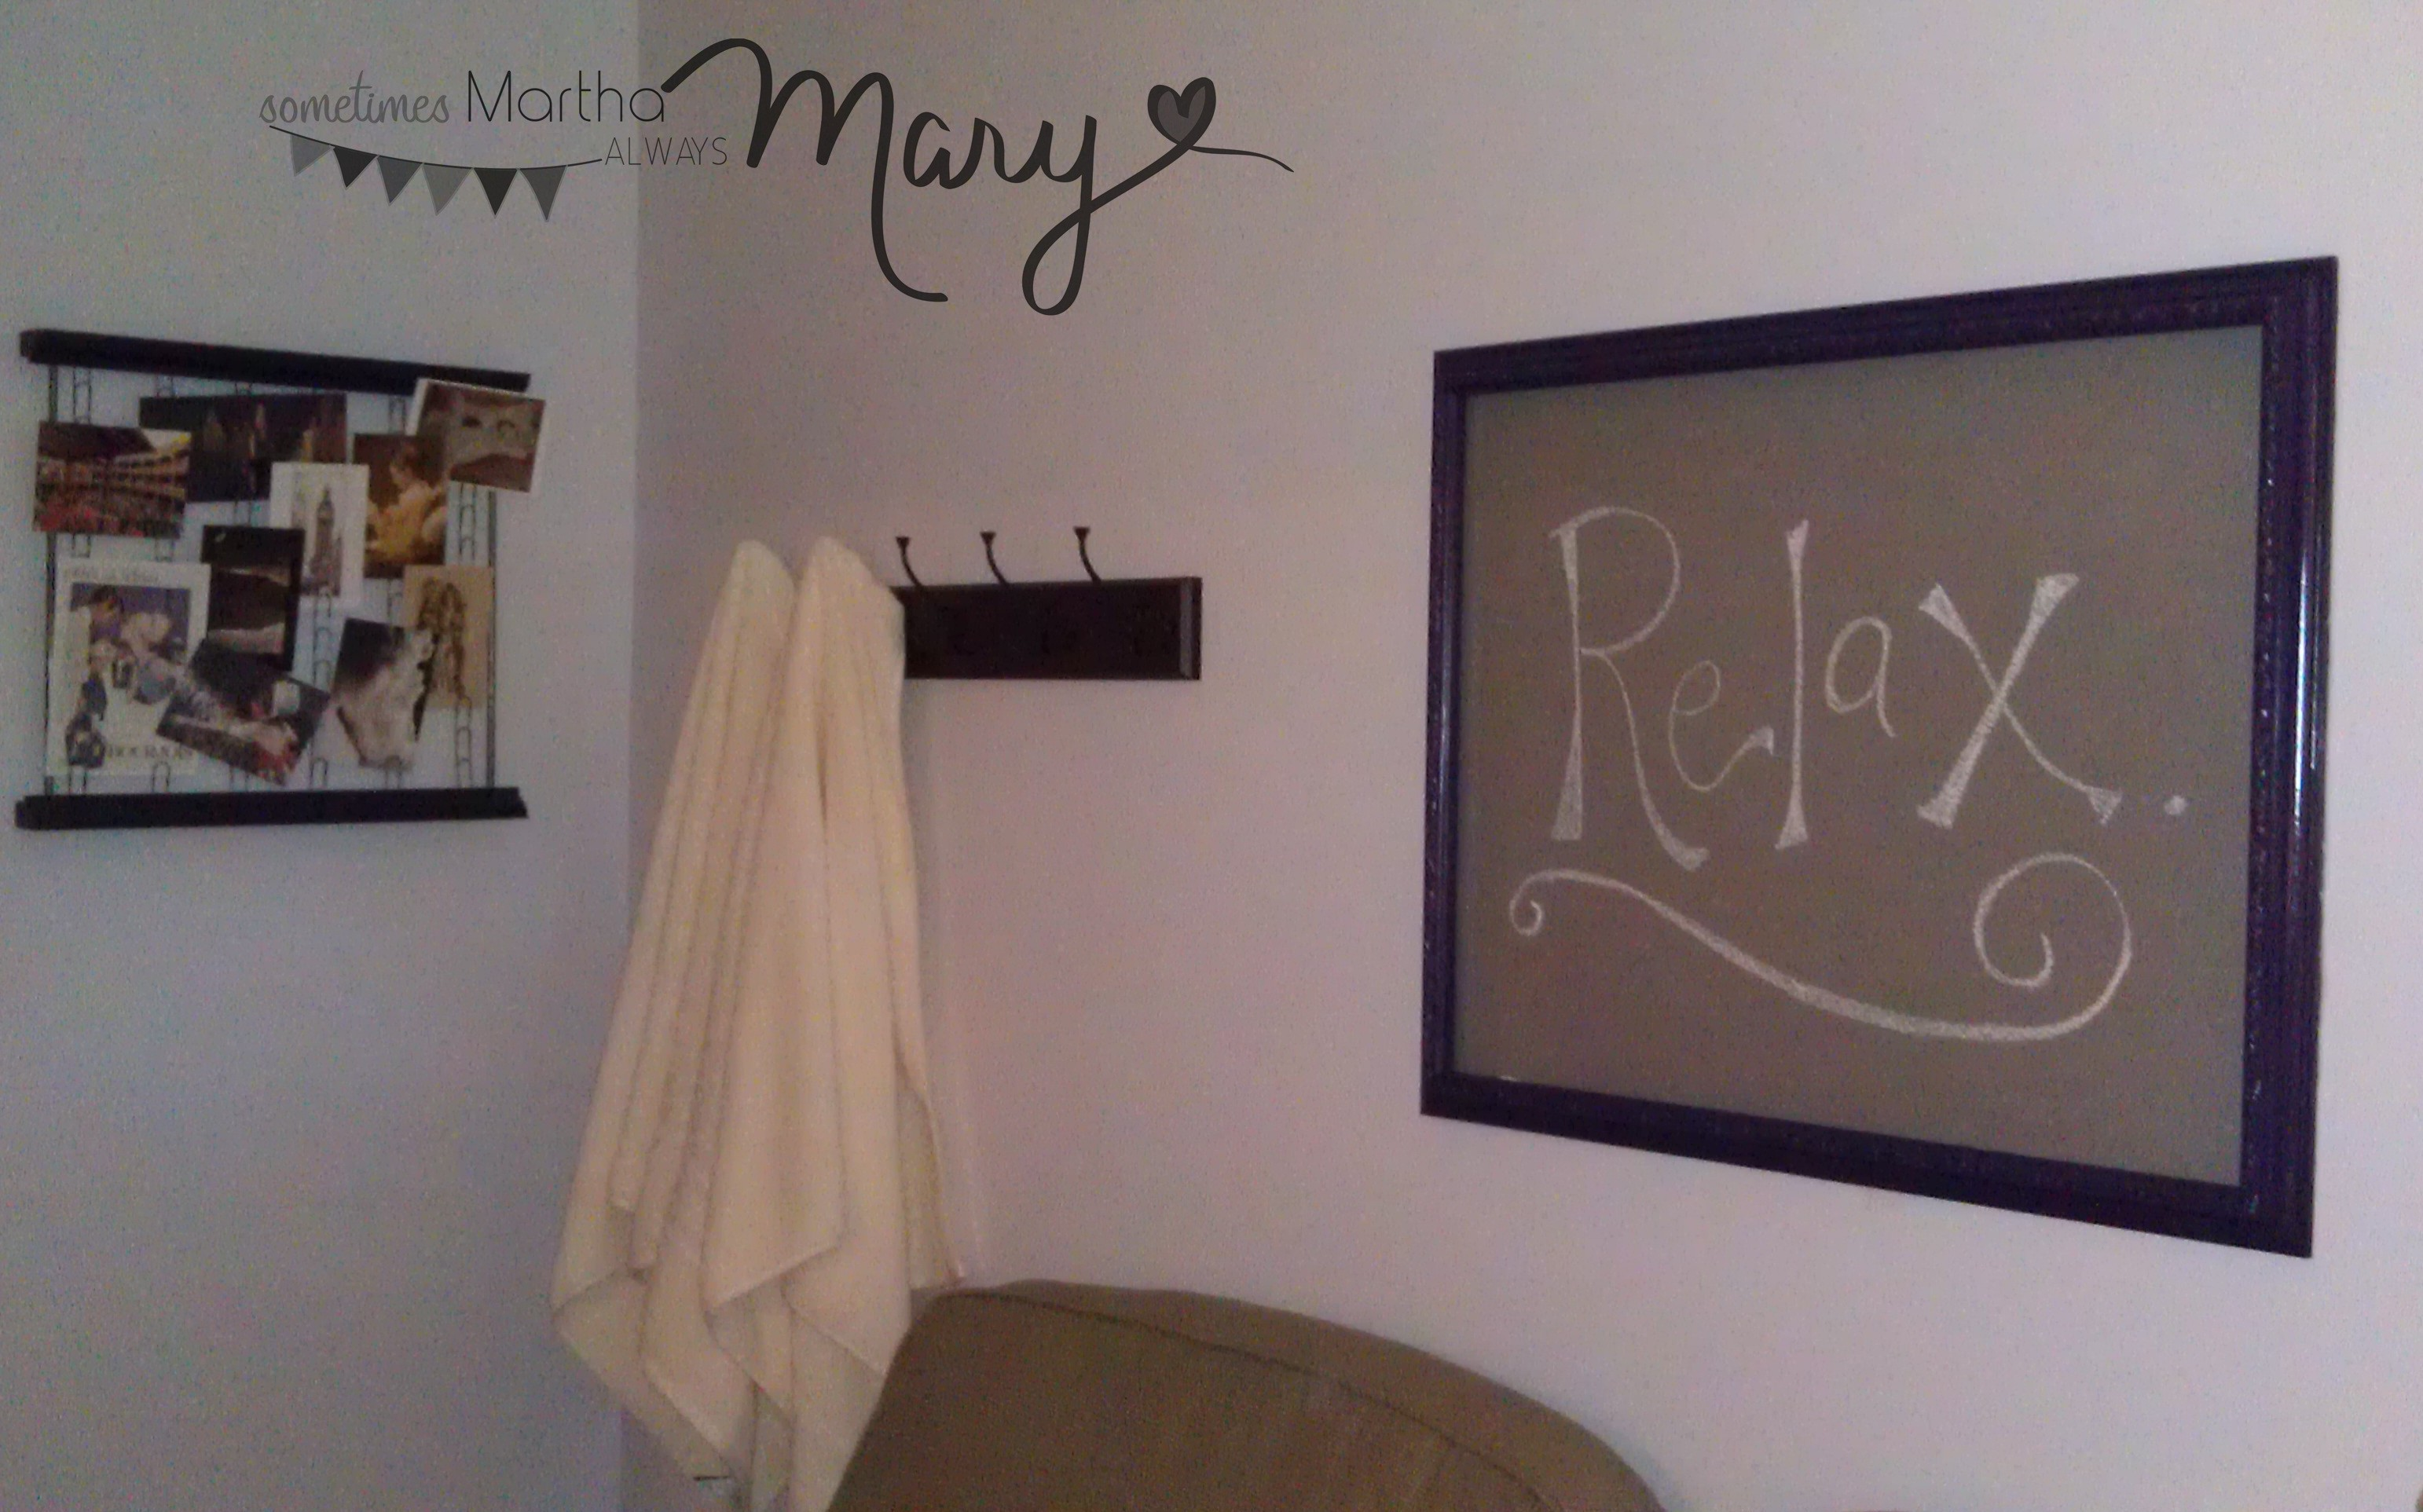 Basement Guest Room Part 2 Sometimes Martha Always Mary